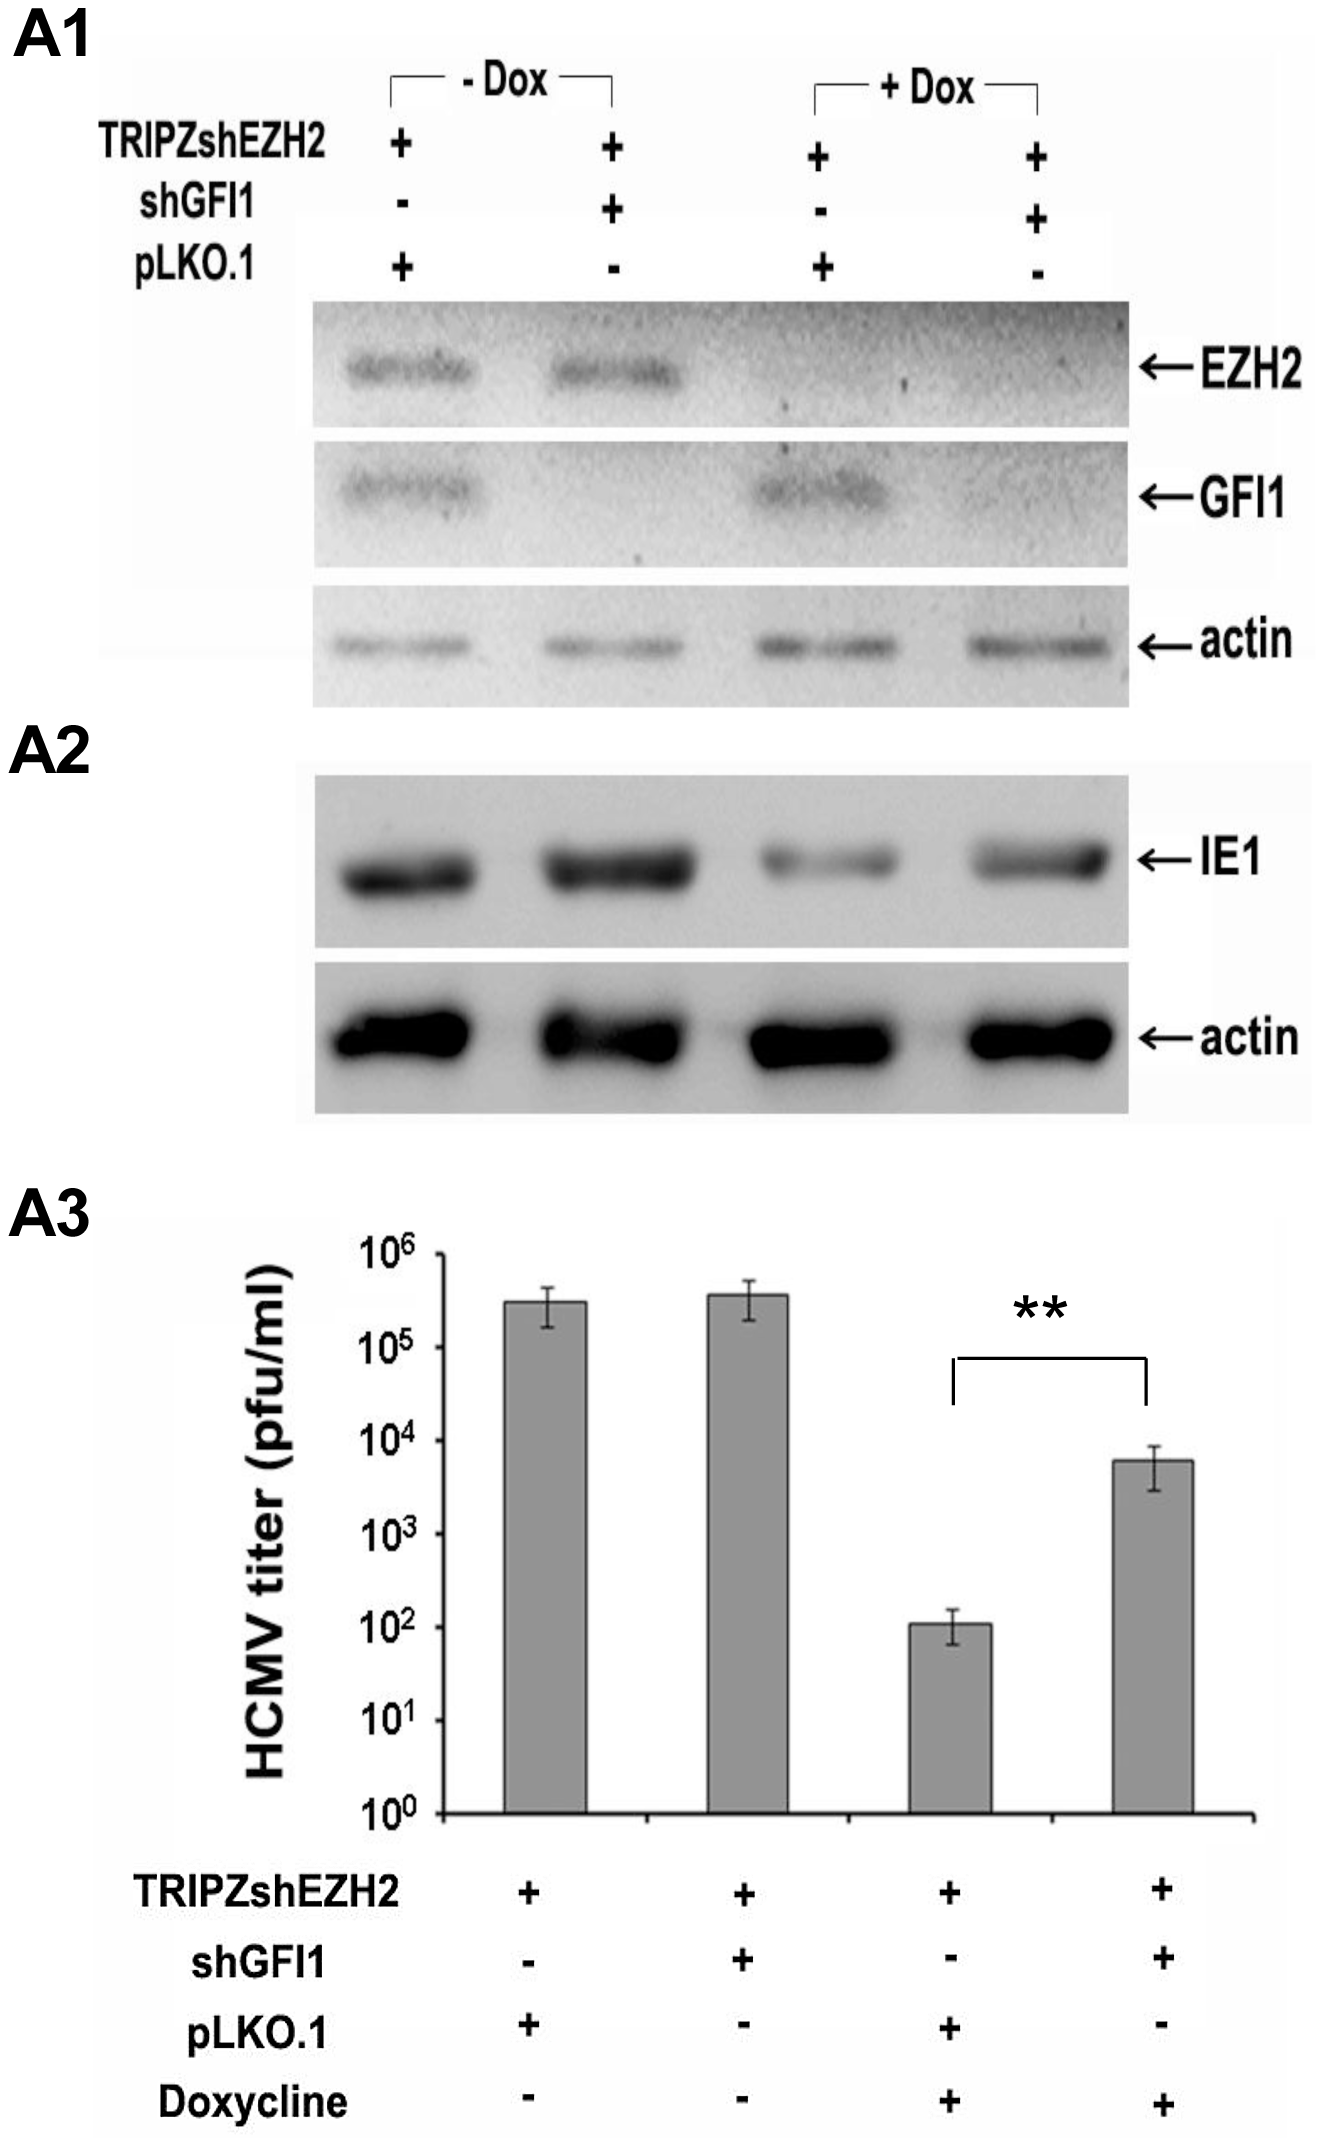 The knockdown of GFI1 partially rescues the ability of HCMV to infect HFF cells in which EZH2 was knocked down.